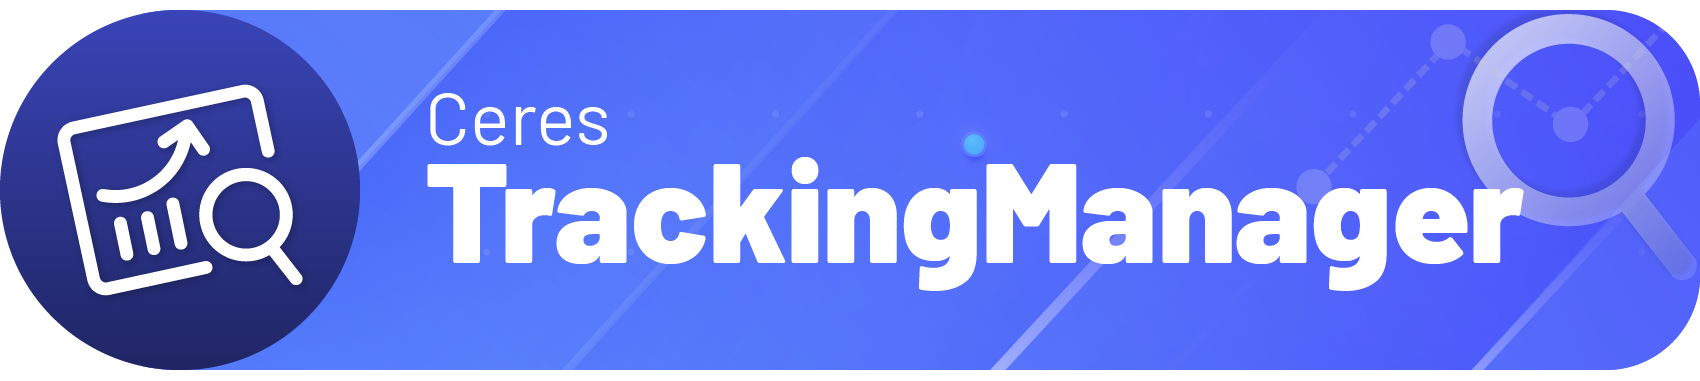 TrackingManager